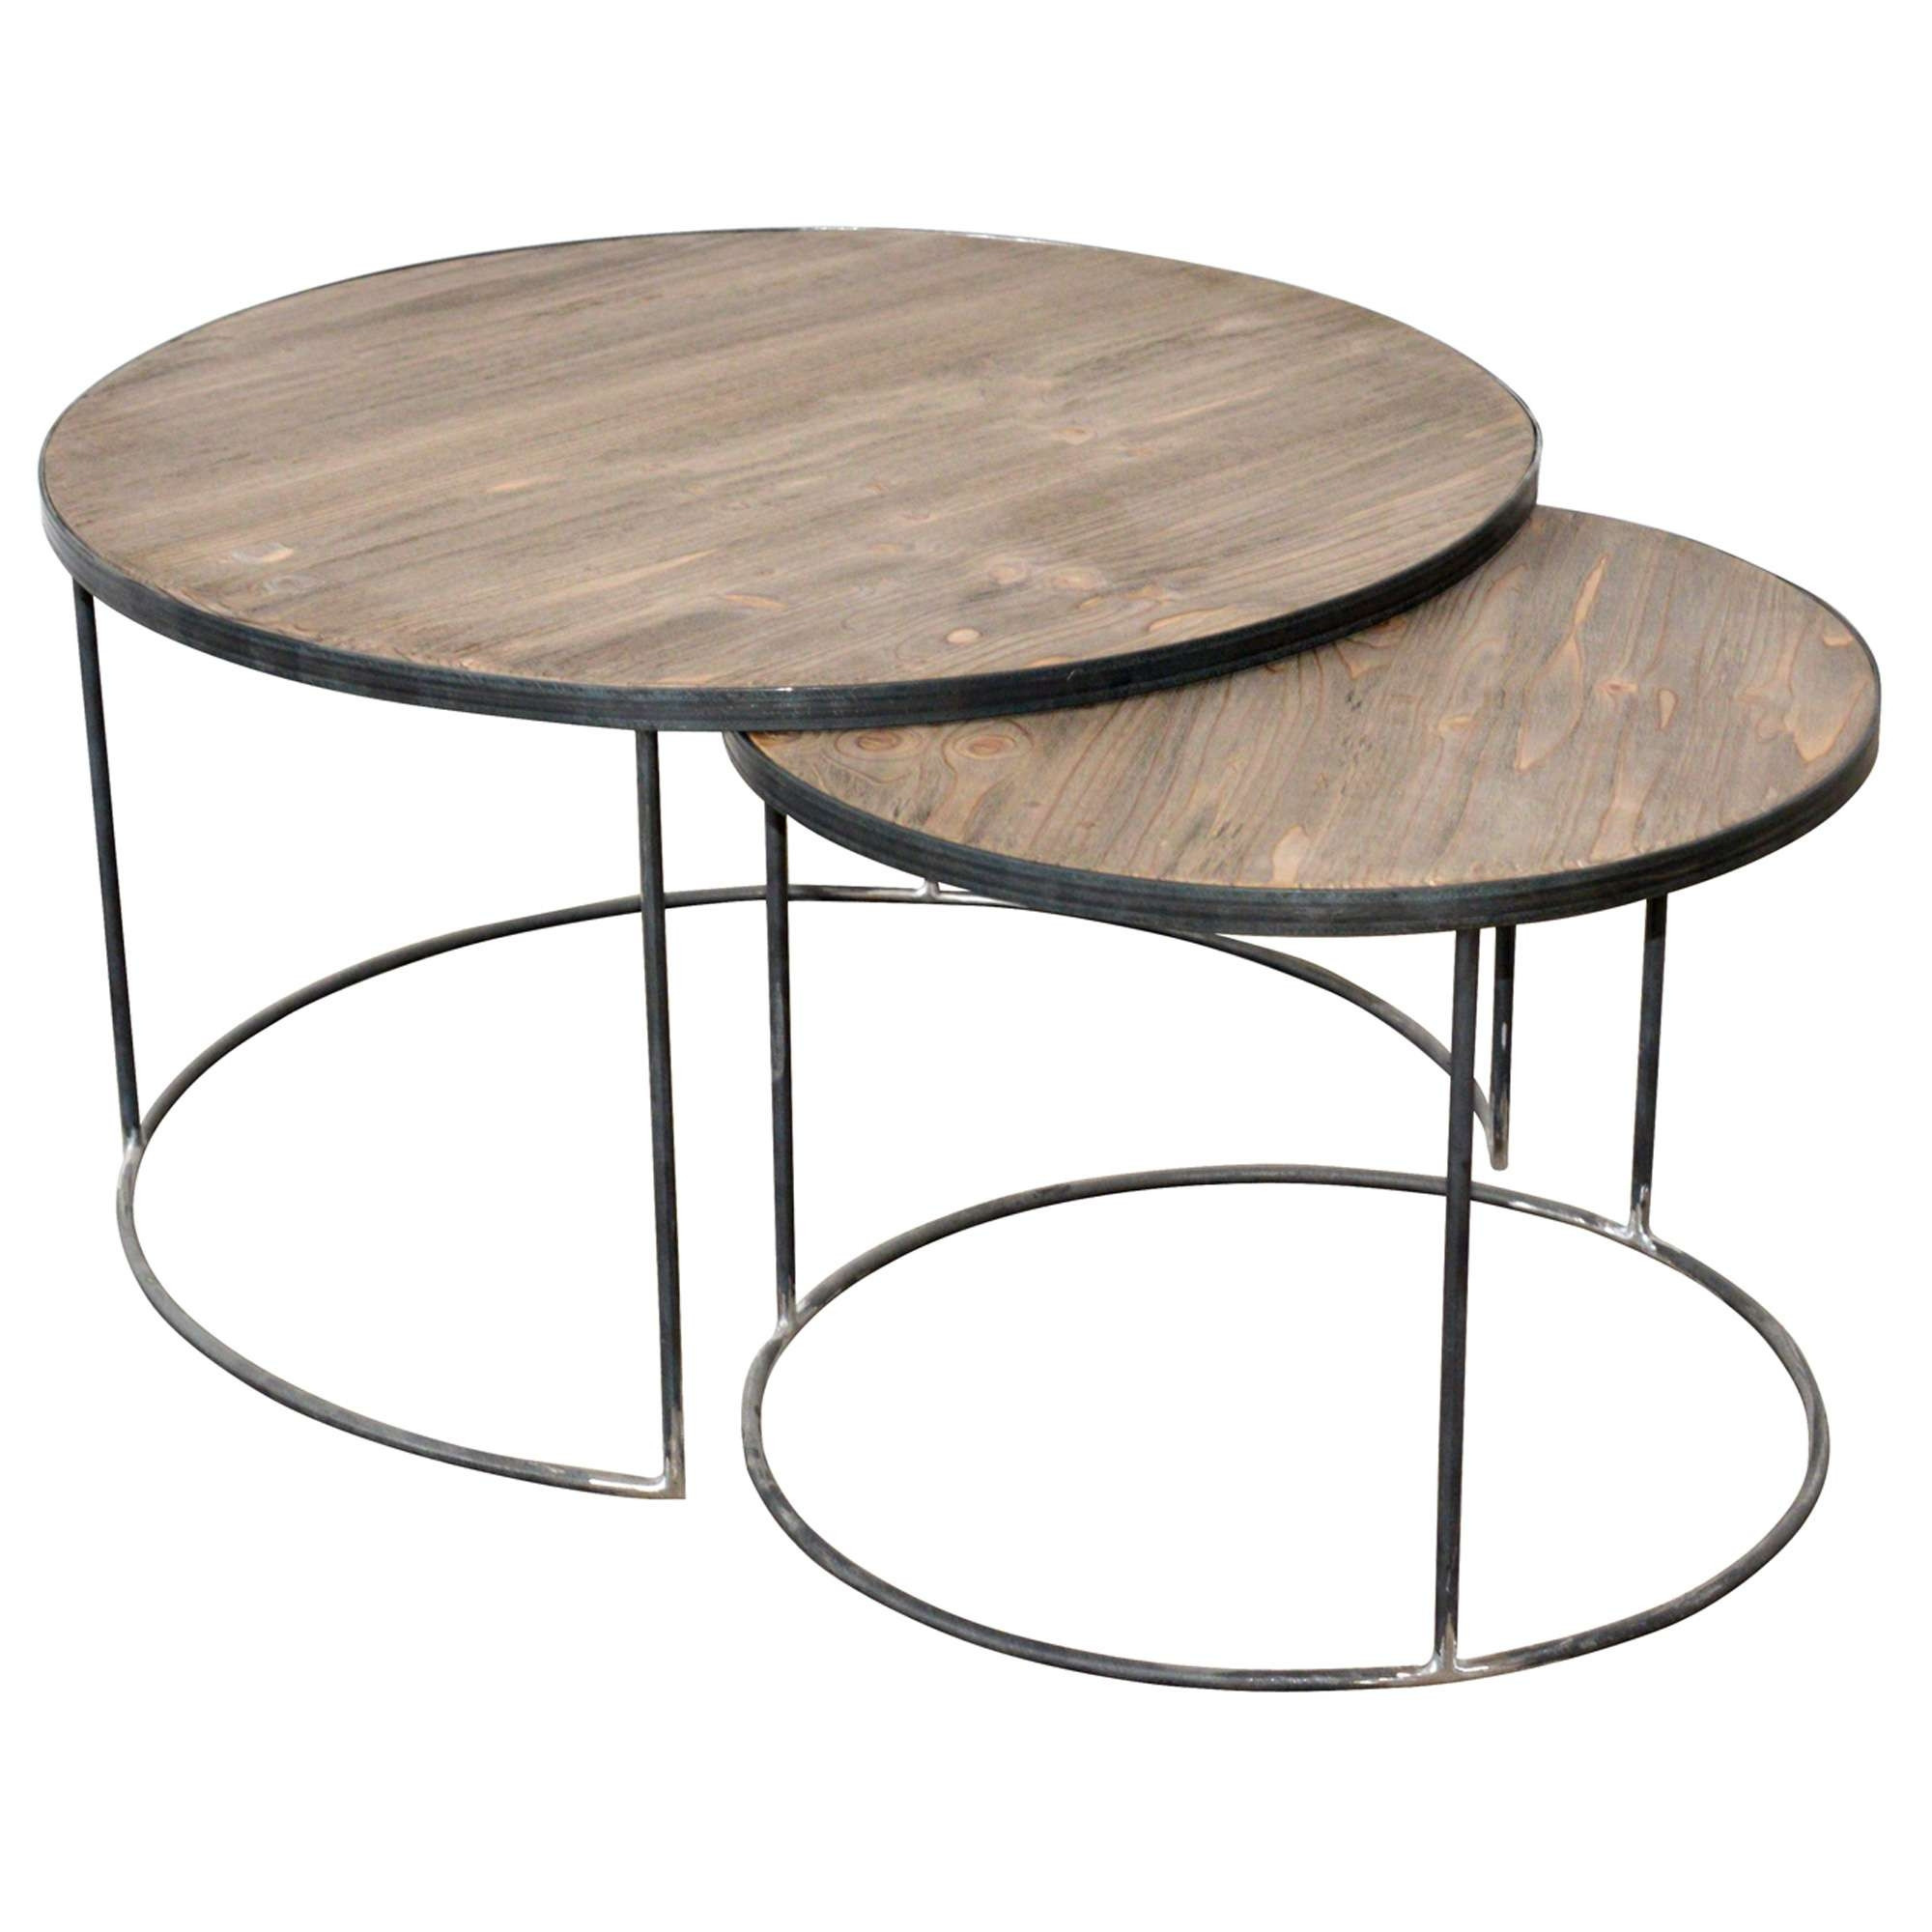 Most Current Round Coffee Tables Within Good Round Coffee Table Set 55 In Home Decoration Ideas With Round (View 14 of 20)